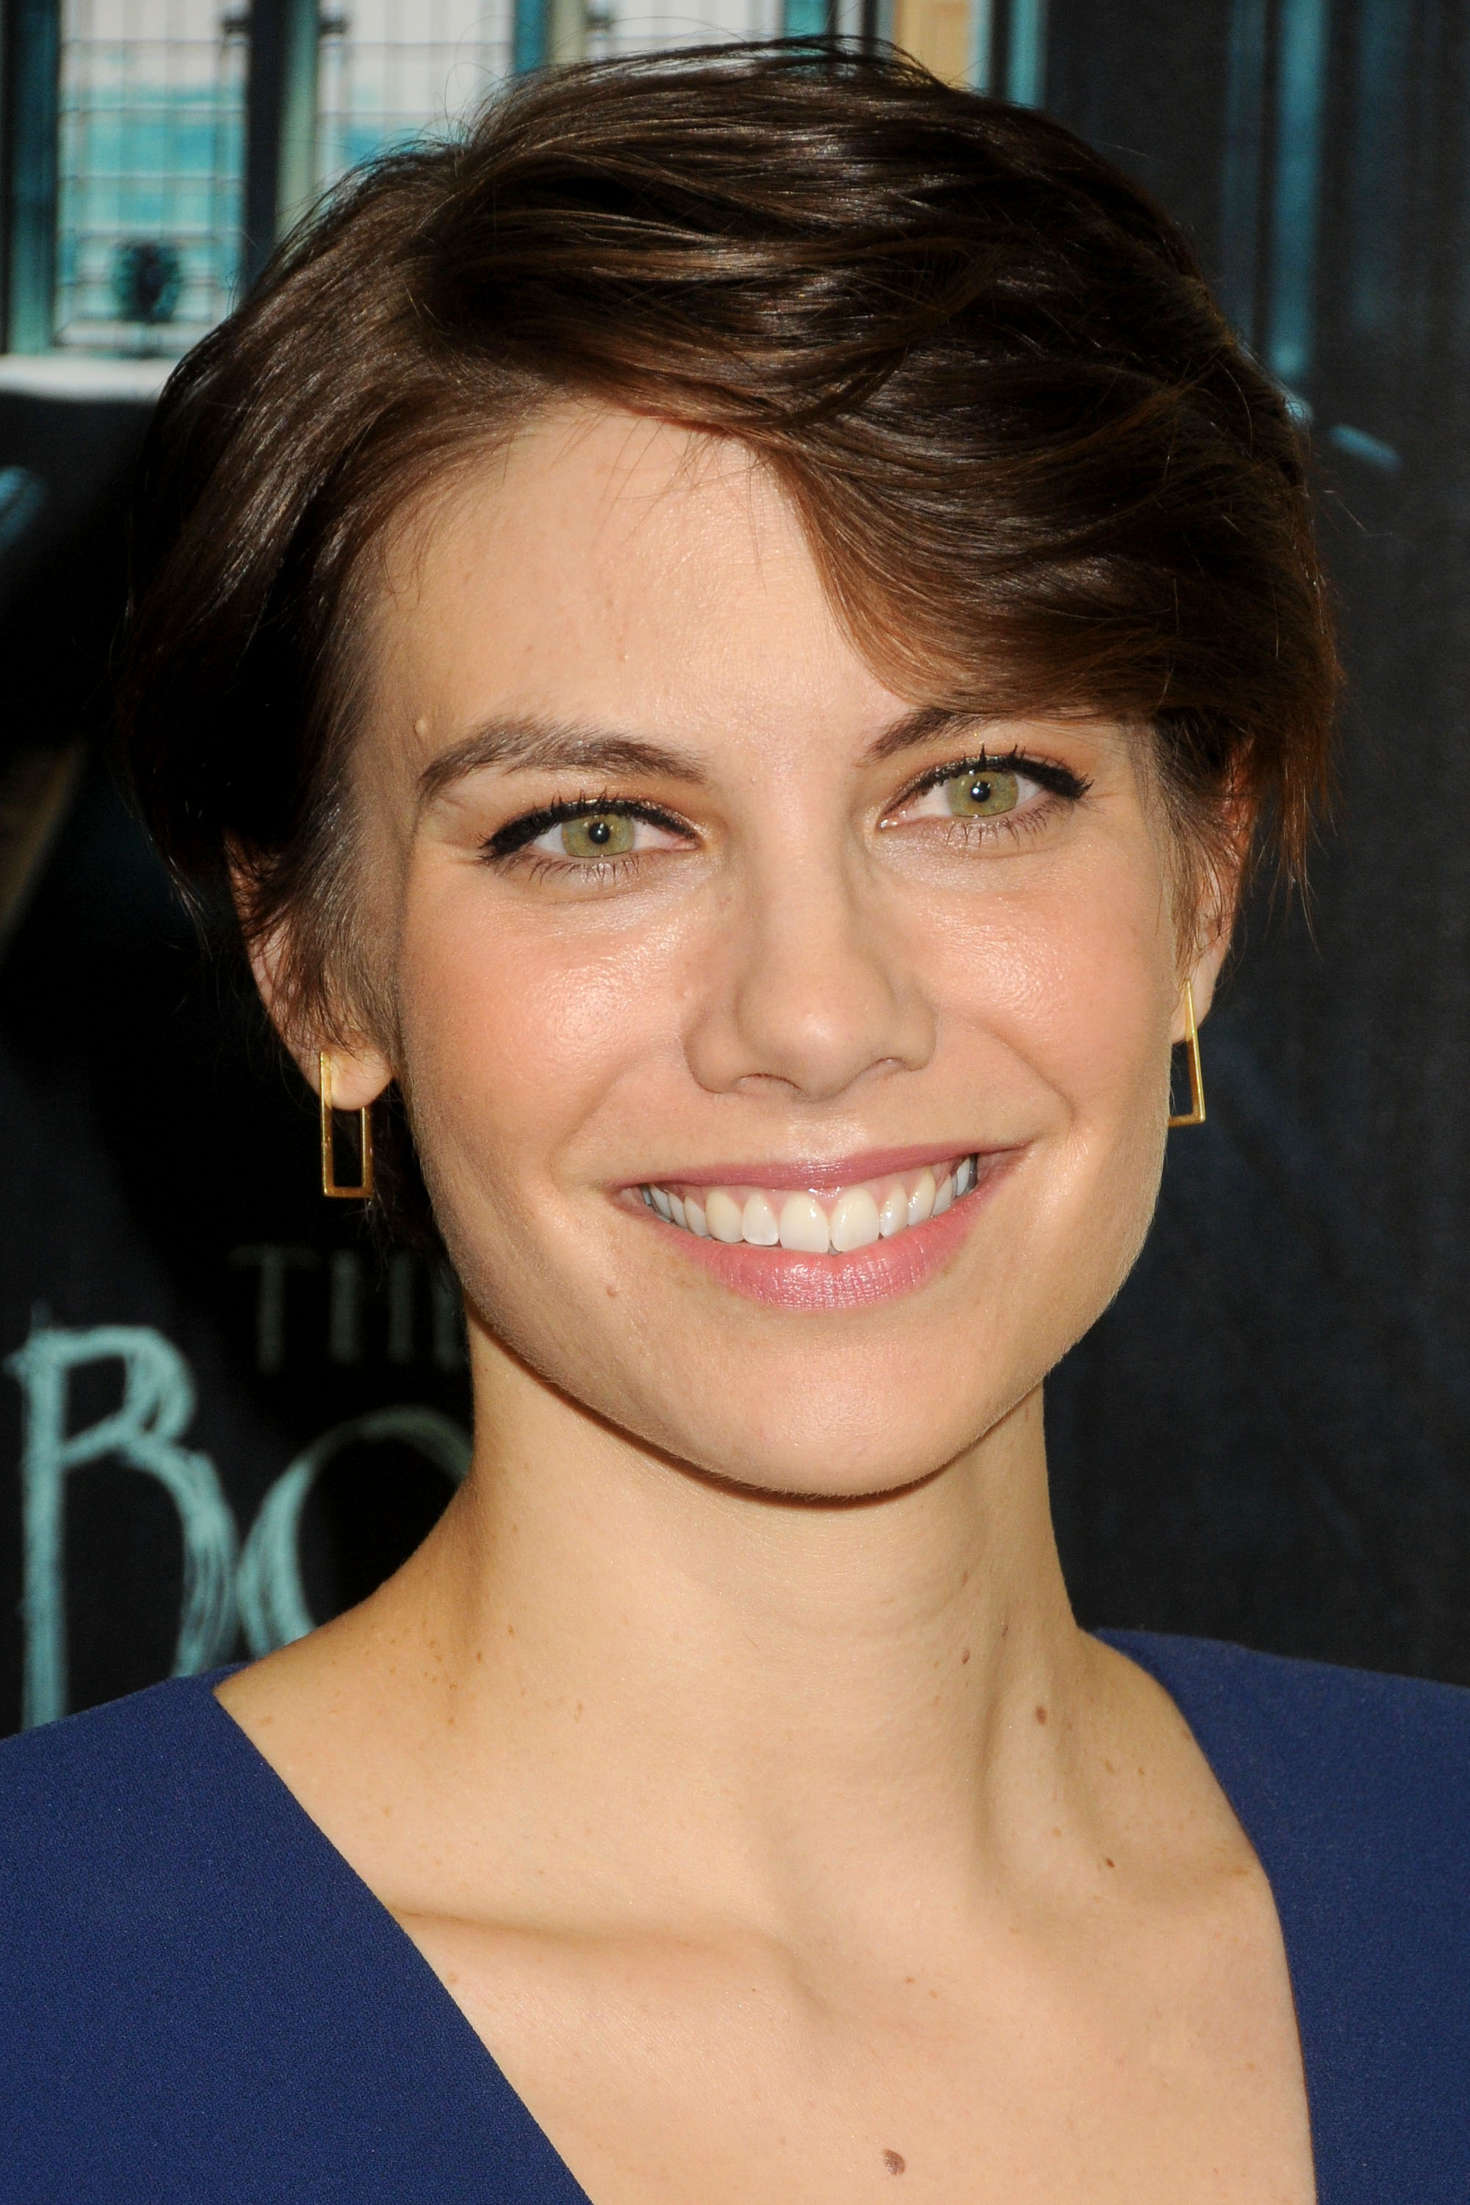 Lauren Cohan The Boy Premiere in Los Angeles